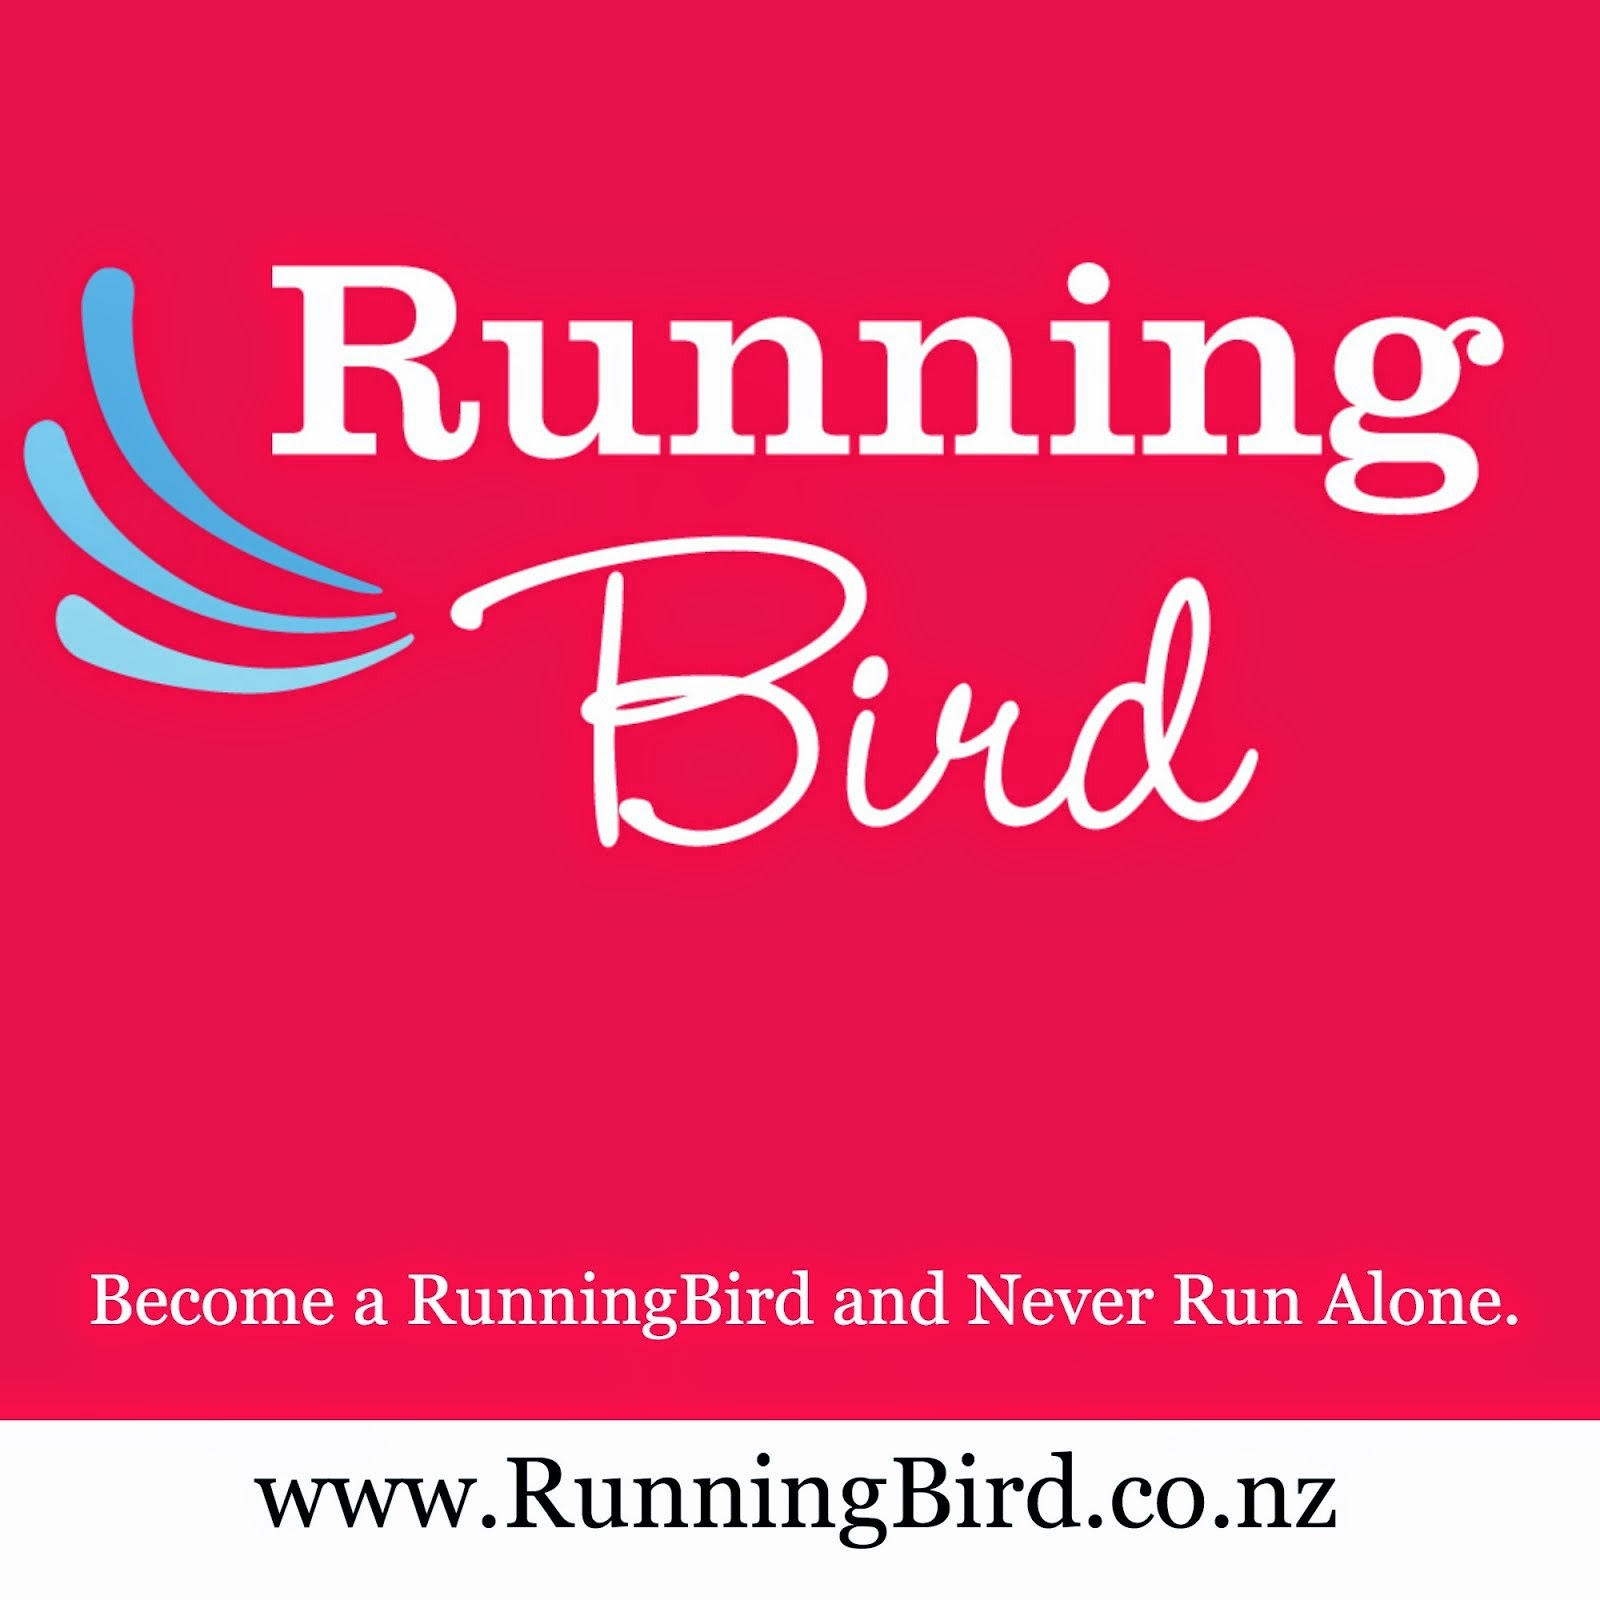 Become a RunningBird!